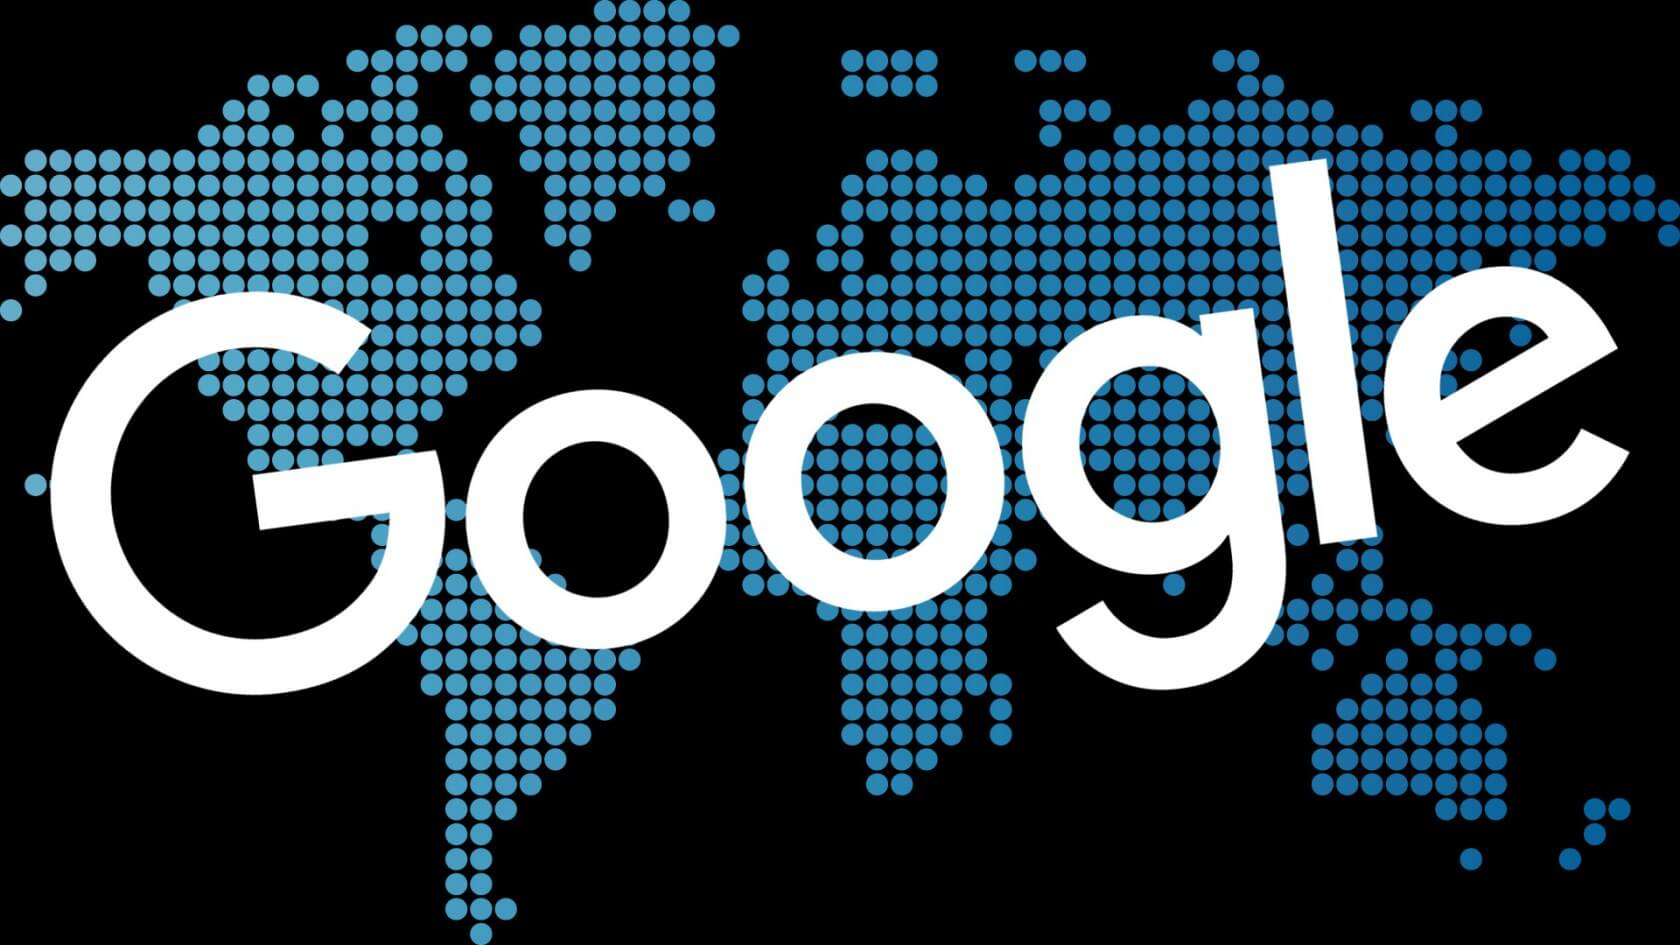 Google Tracks Android, iPhone Users' Location